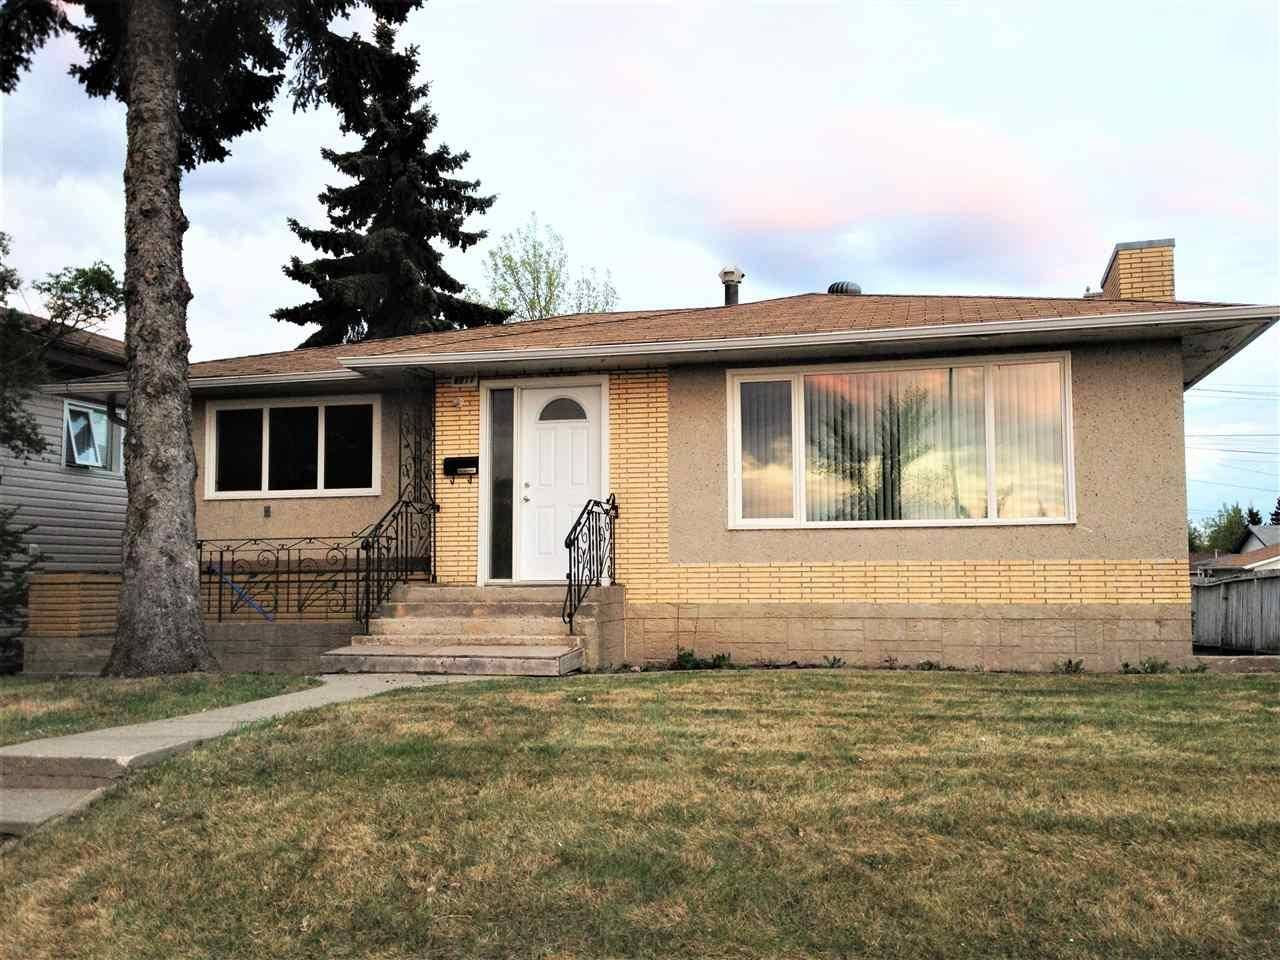 House for sale at 8911 132 Ave Nw Edmonton Alberta - MLS: E4180726